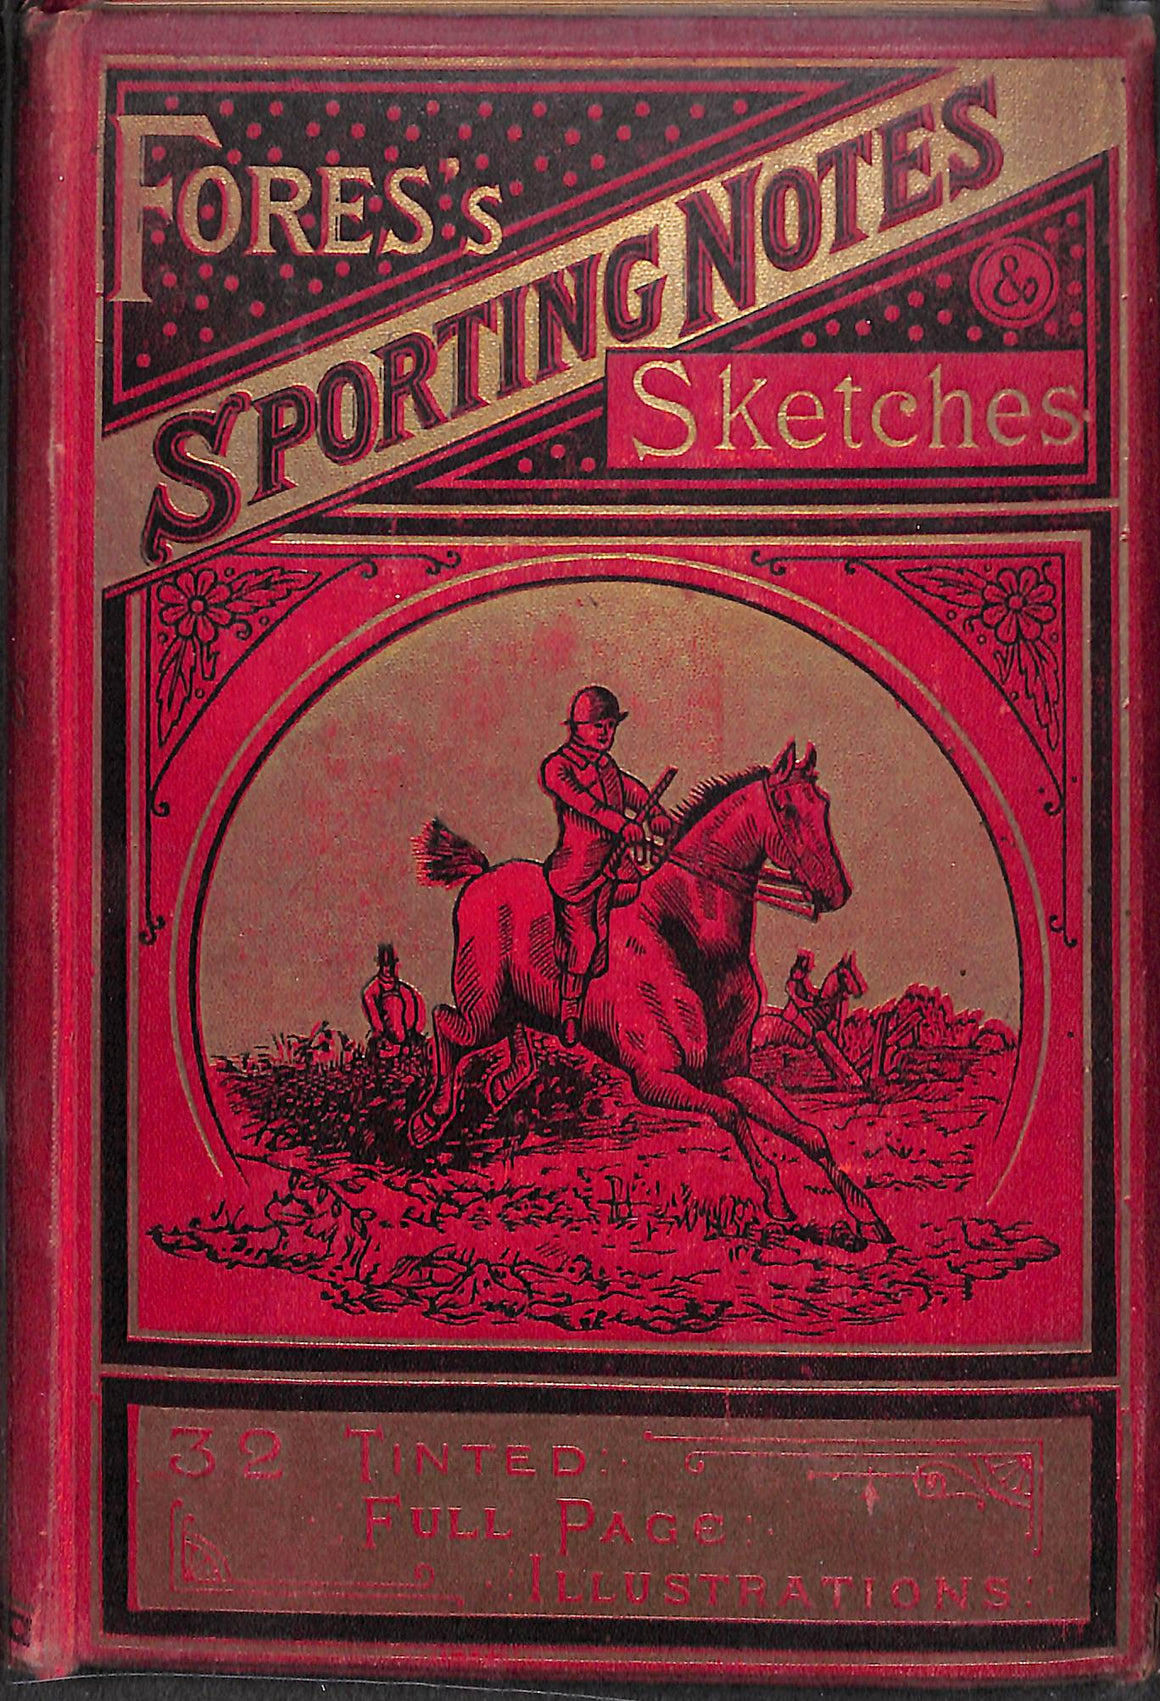 """Fores's Sporting Notes & Sketches Vol. IX 1892"""